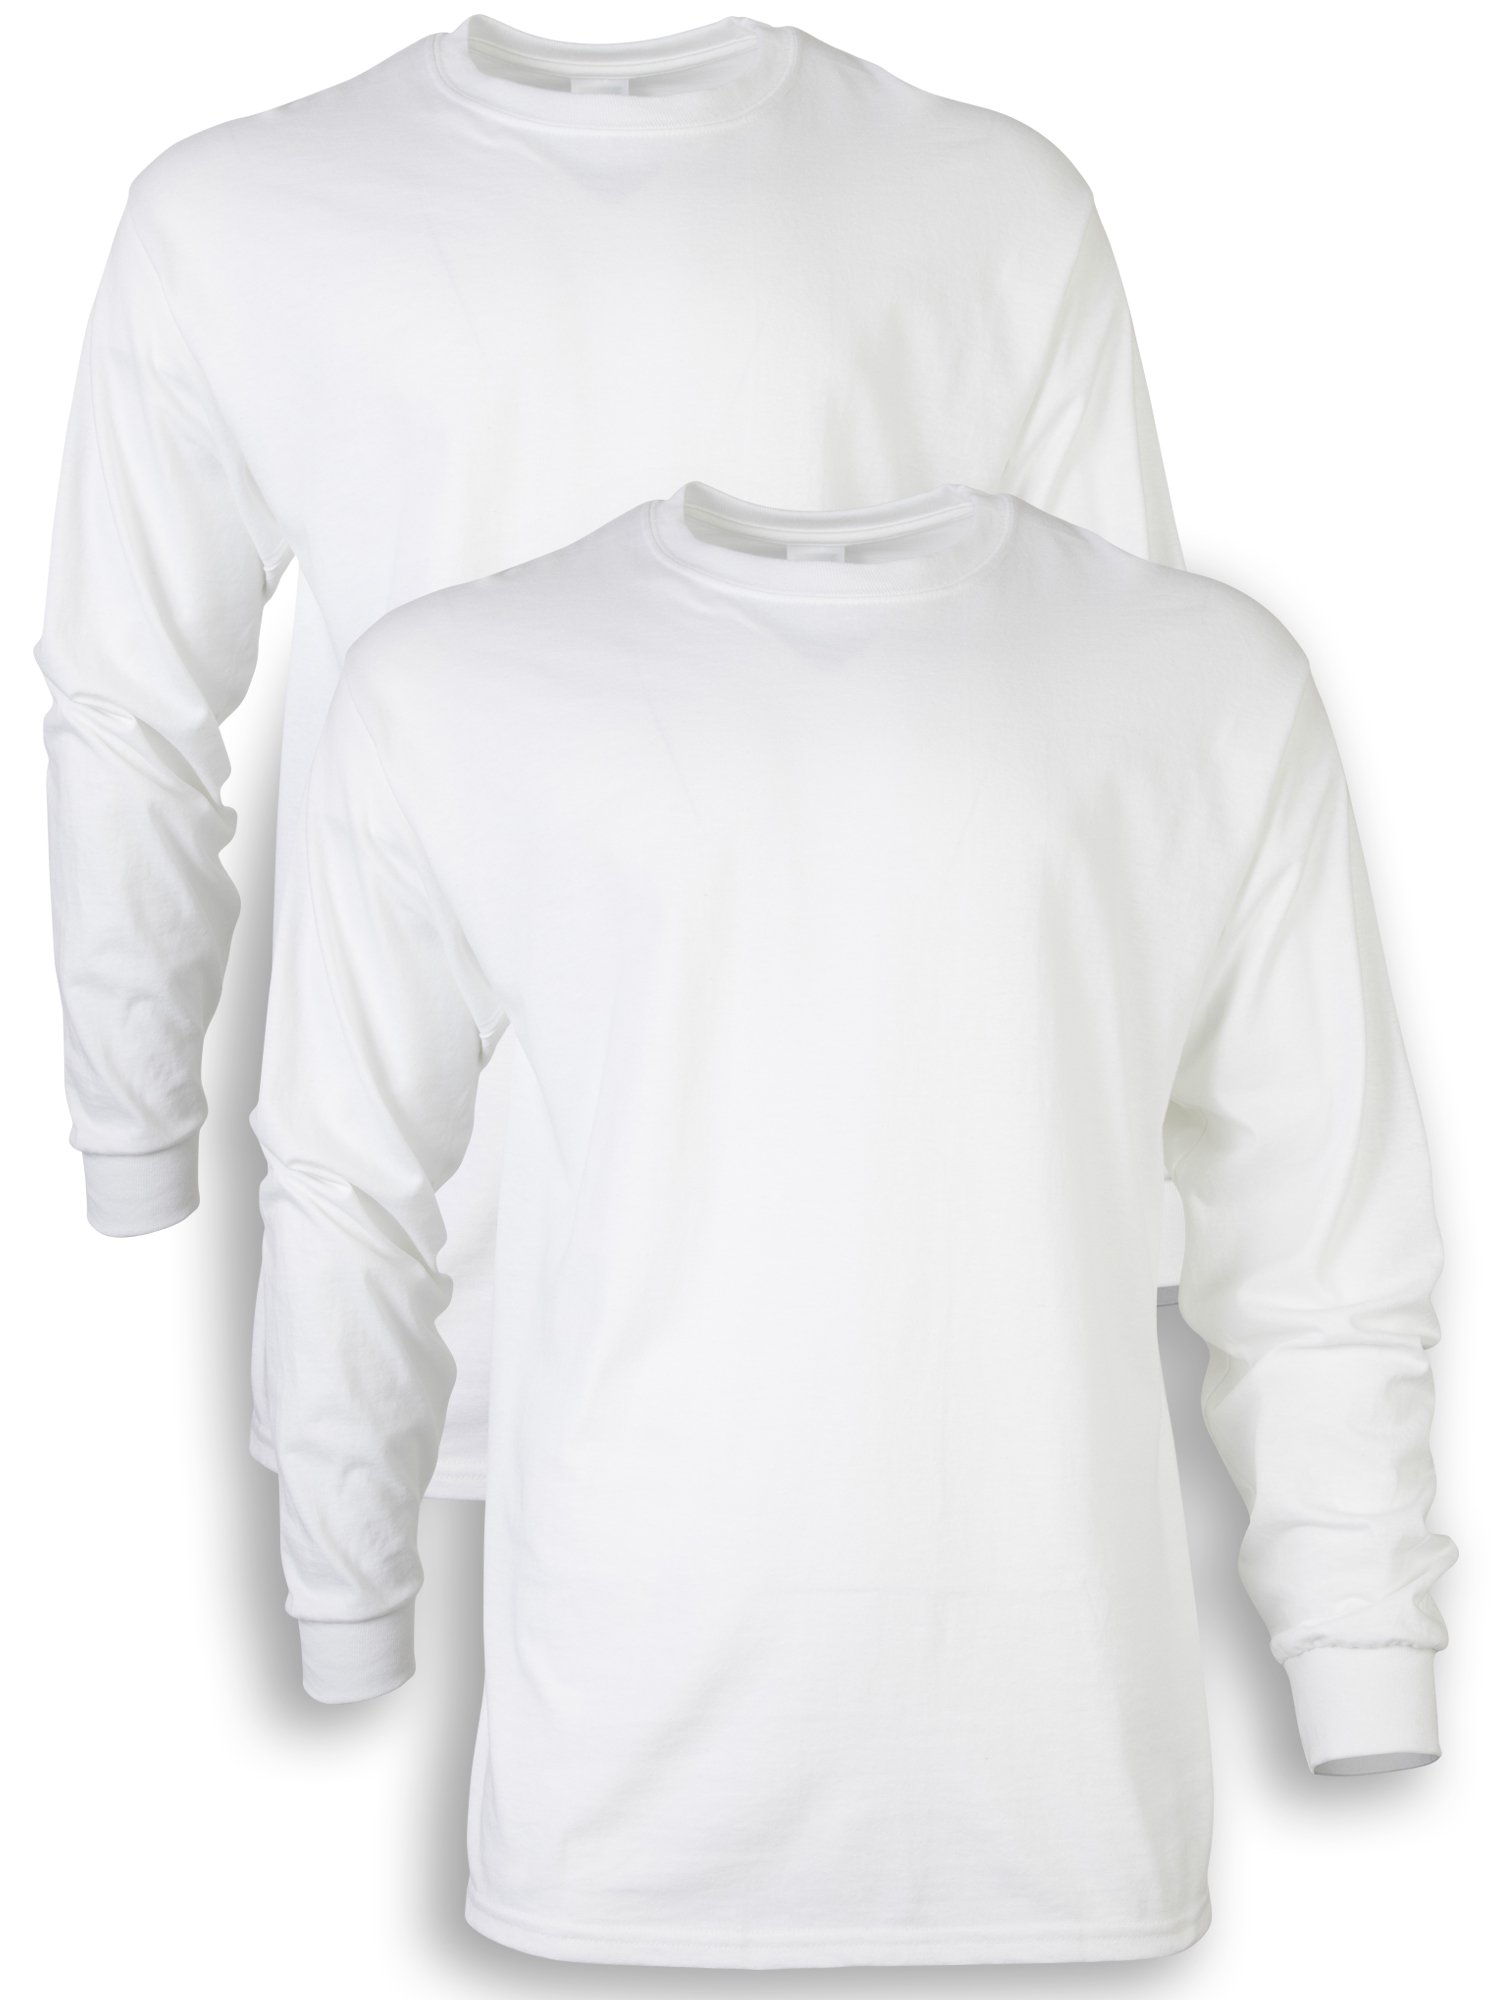 Gildan Men's Ultra Cotton Adult Long Sleeve T-Shirt, 2-Pack, White Large by Gildan (Image #1)